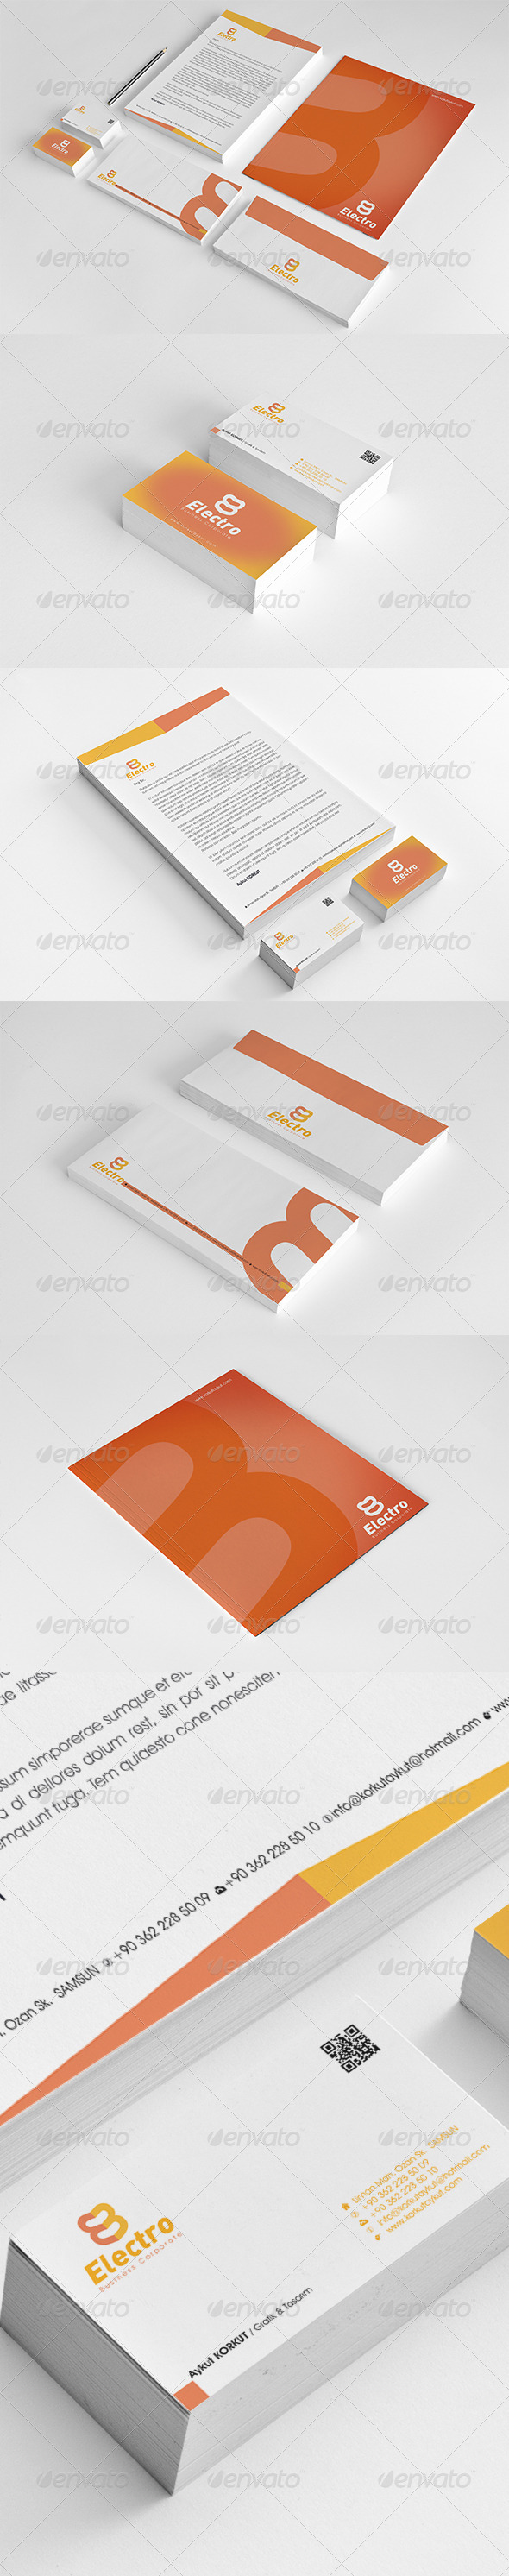 Electro Corporate Identity Package  - Stationery Print Templates